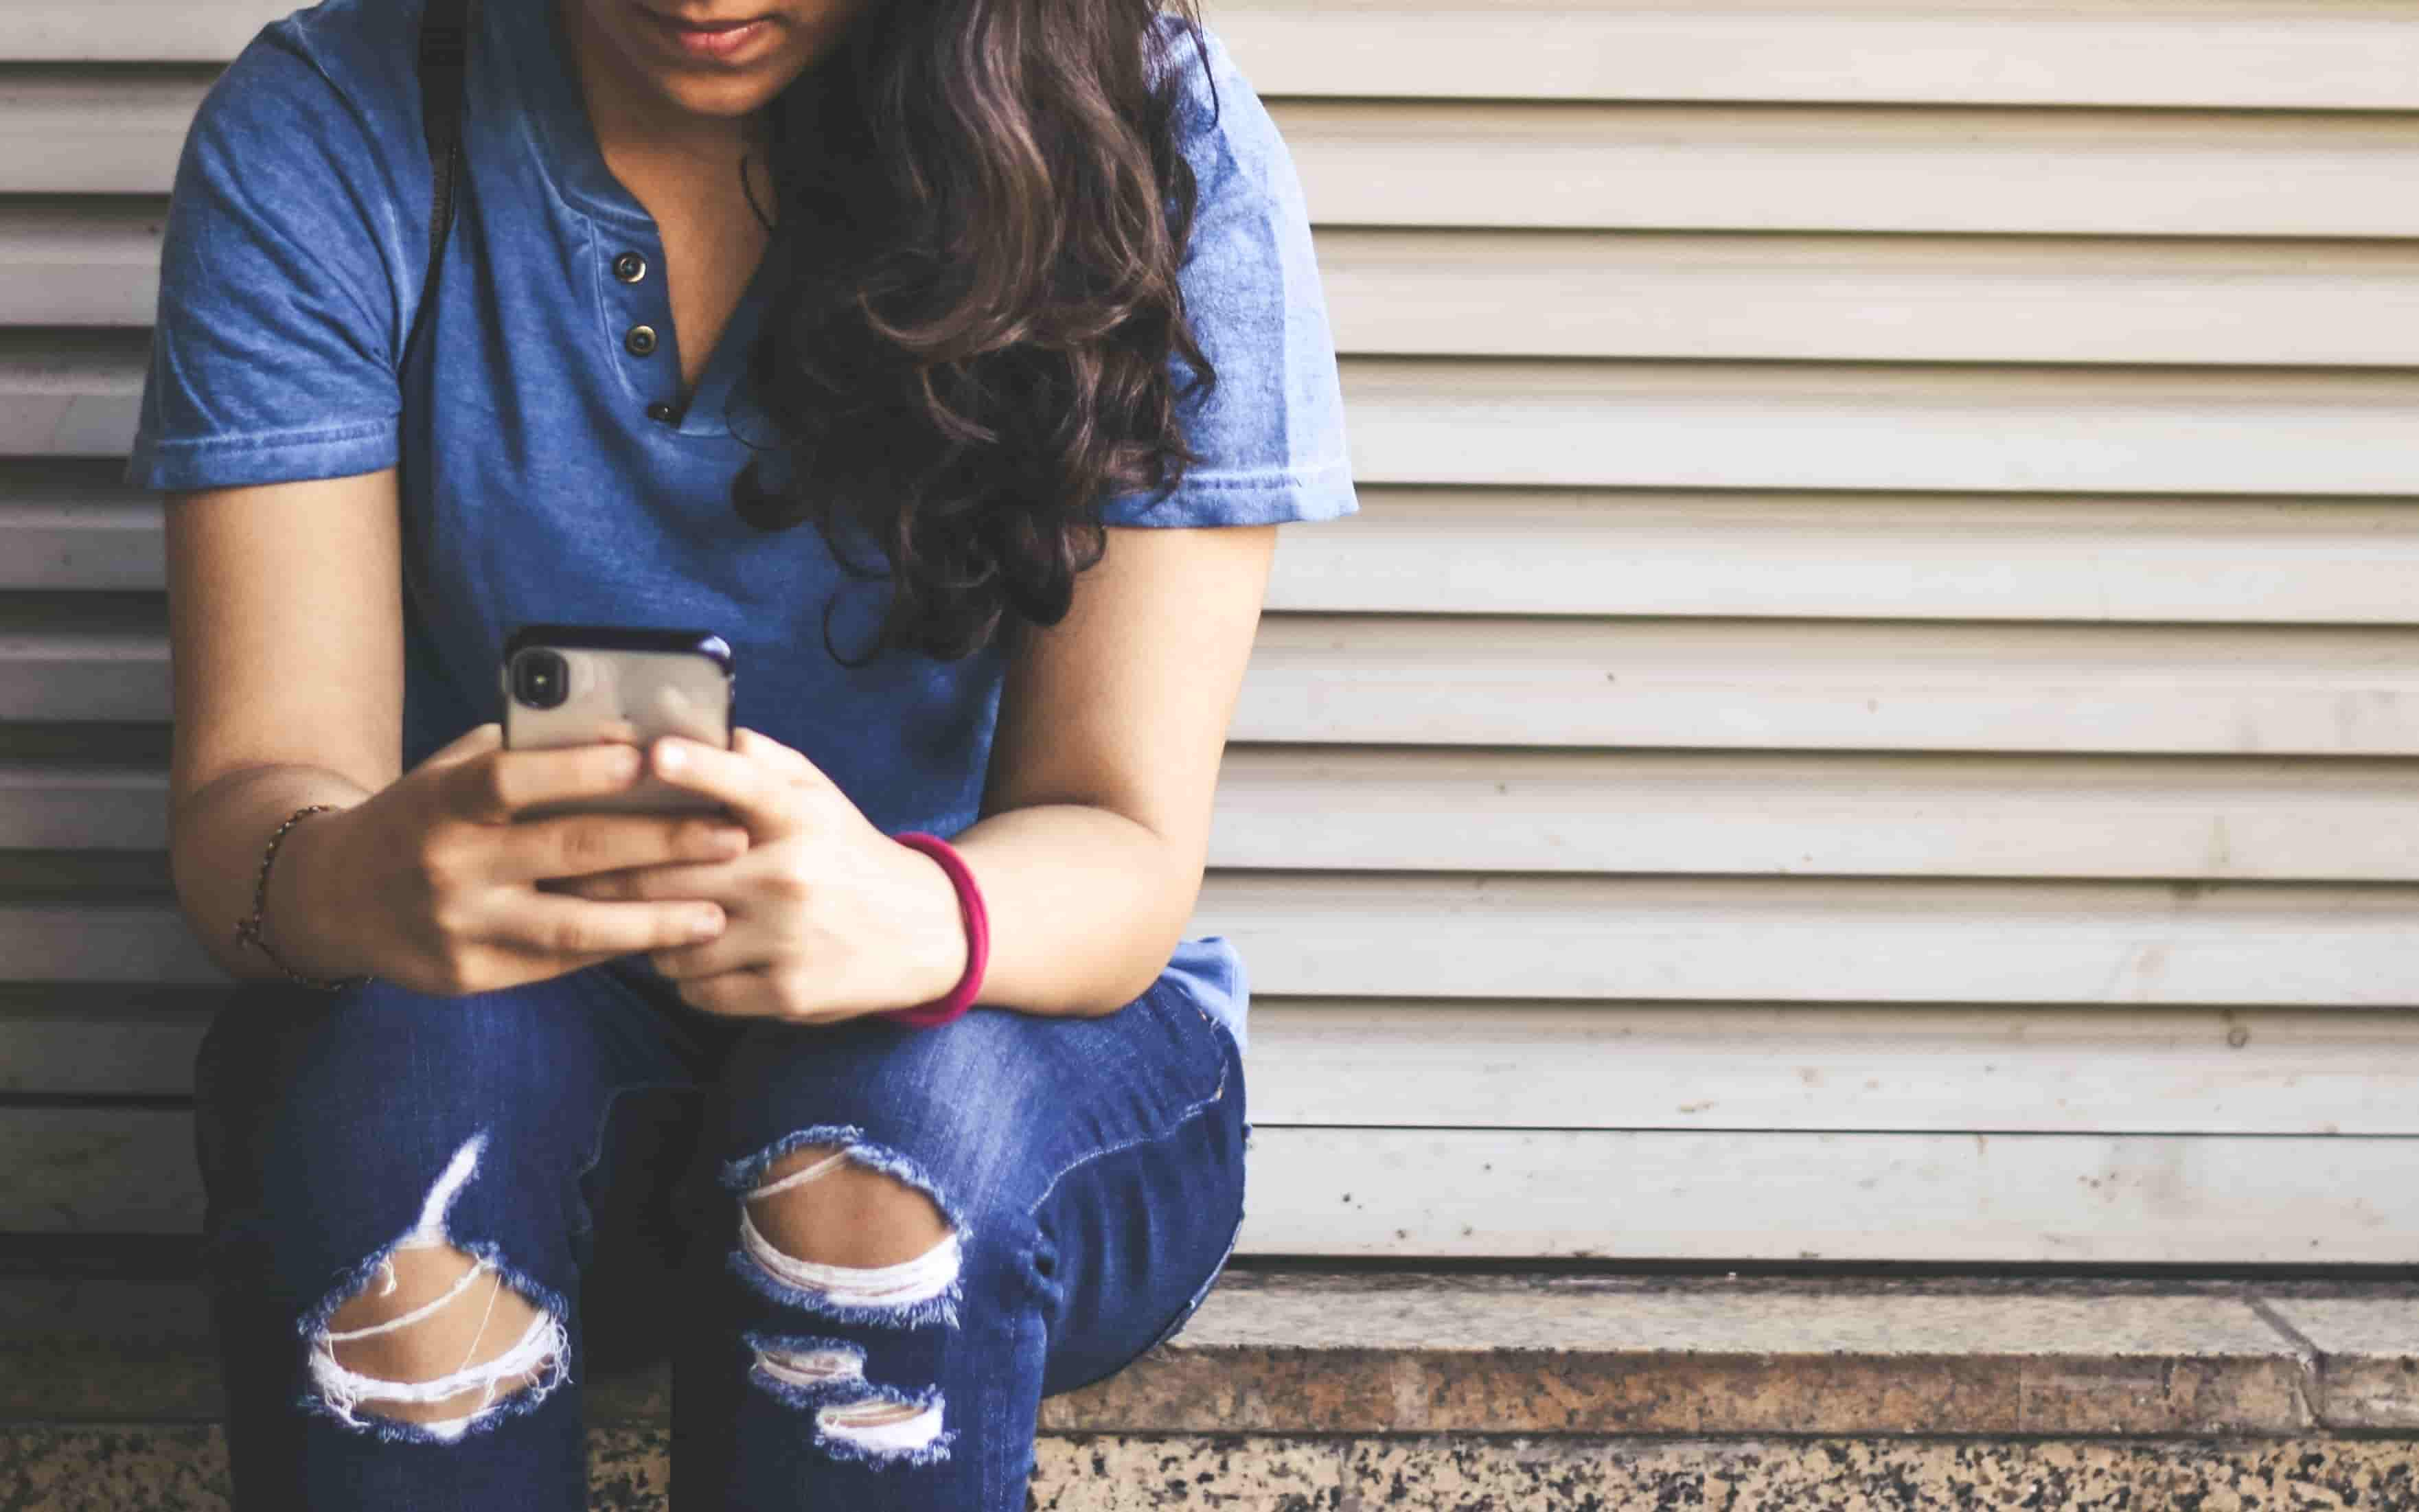 A woman sits outside on a step, holding her phone in both hands as she texts with a nervous look.